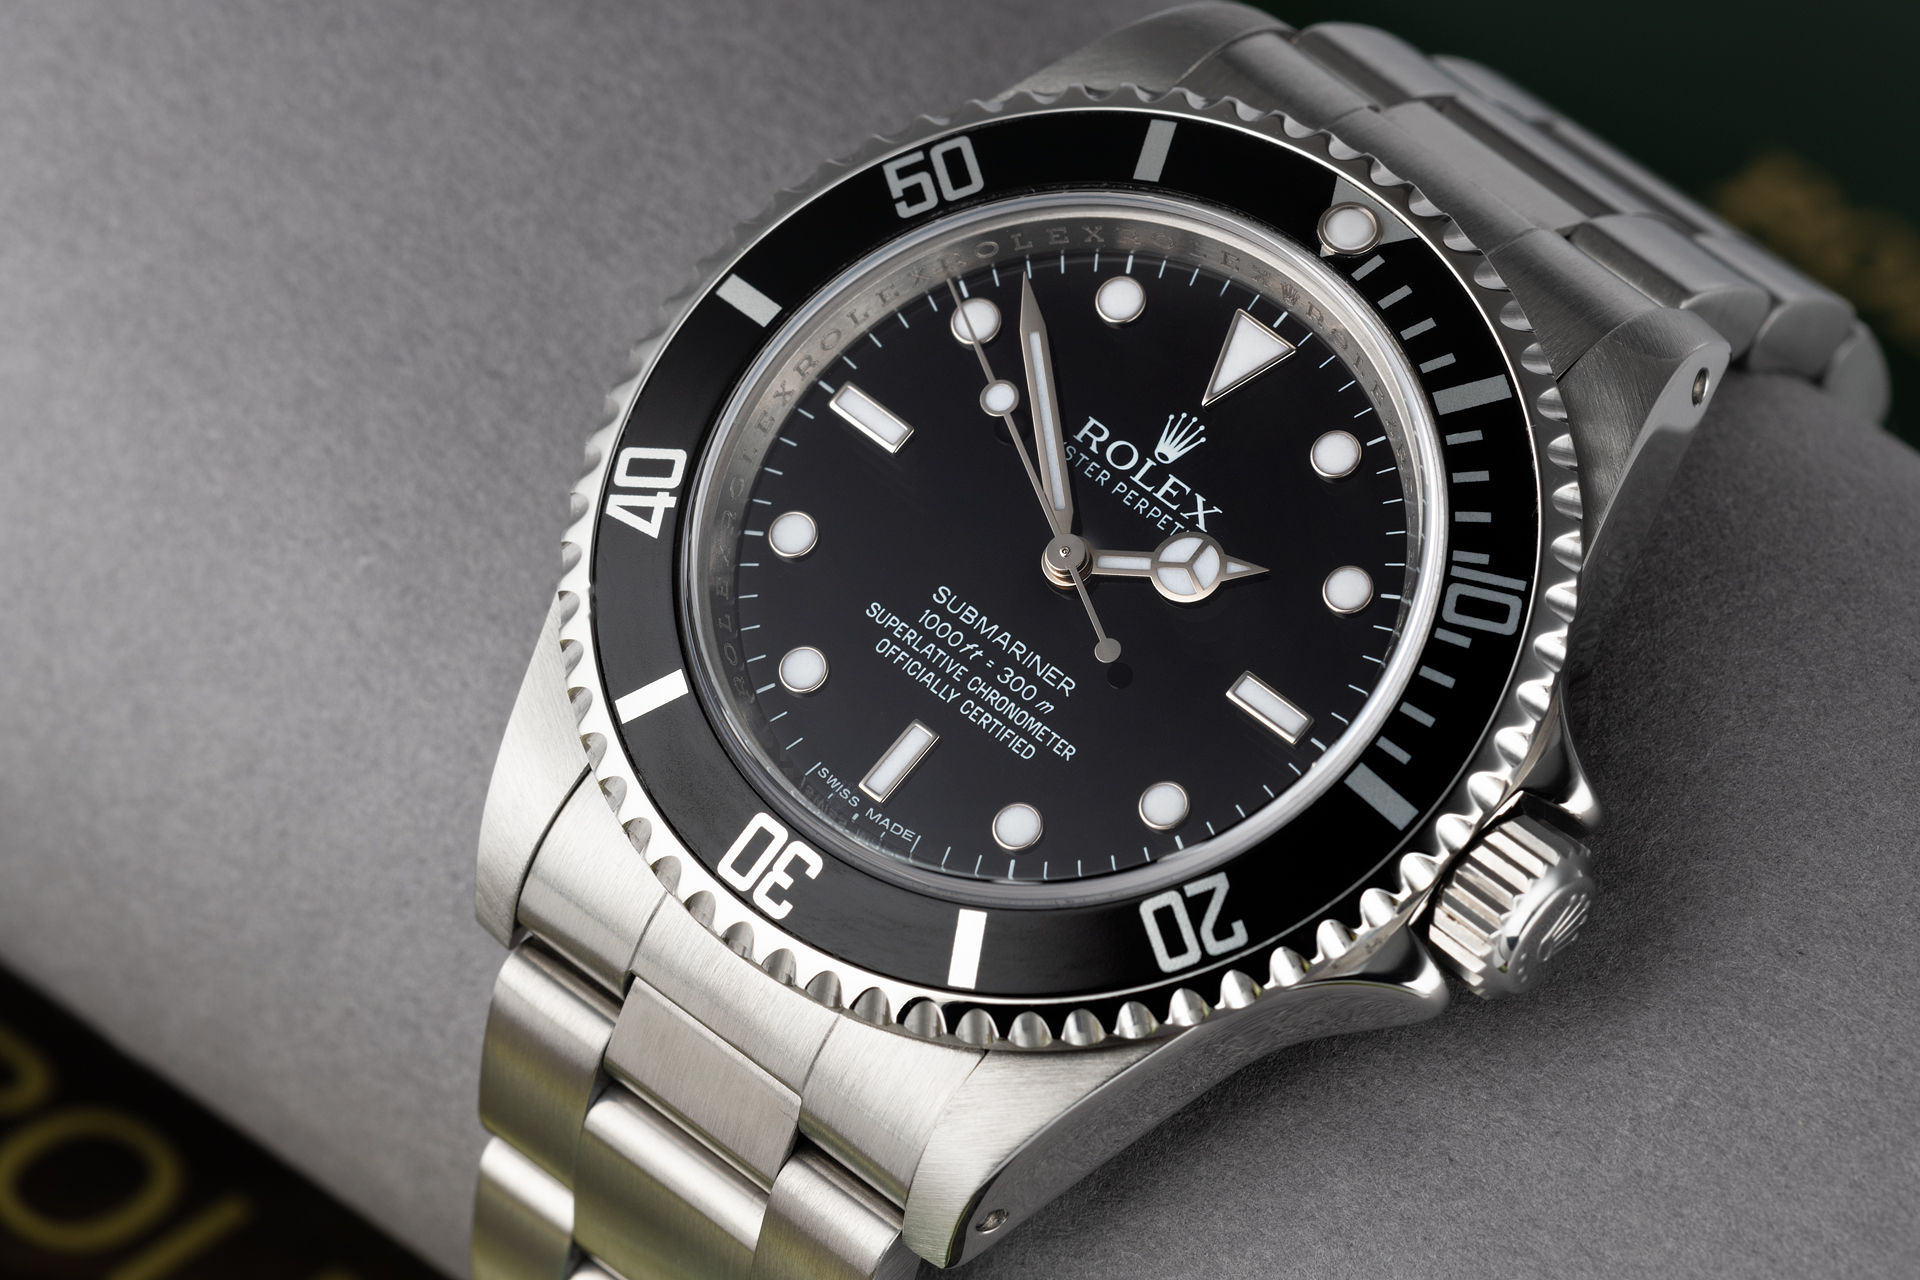 ref 14060M | 'COSC Dial' Full Set | Rolex Submariner